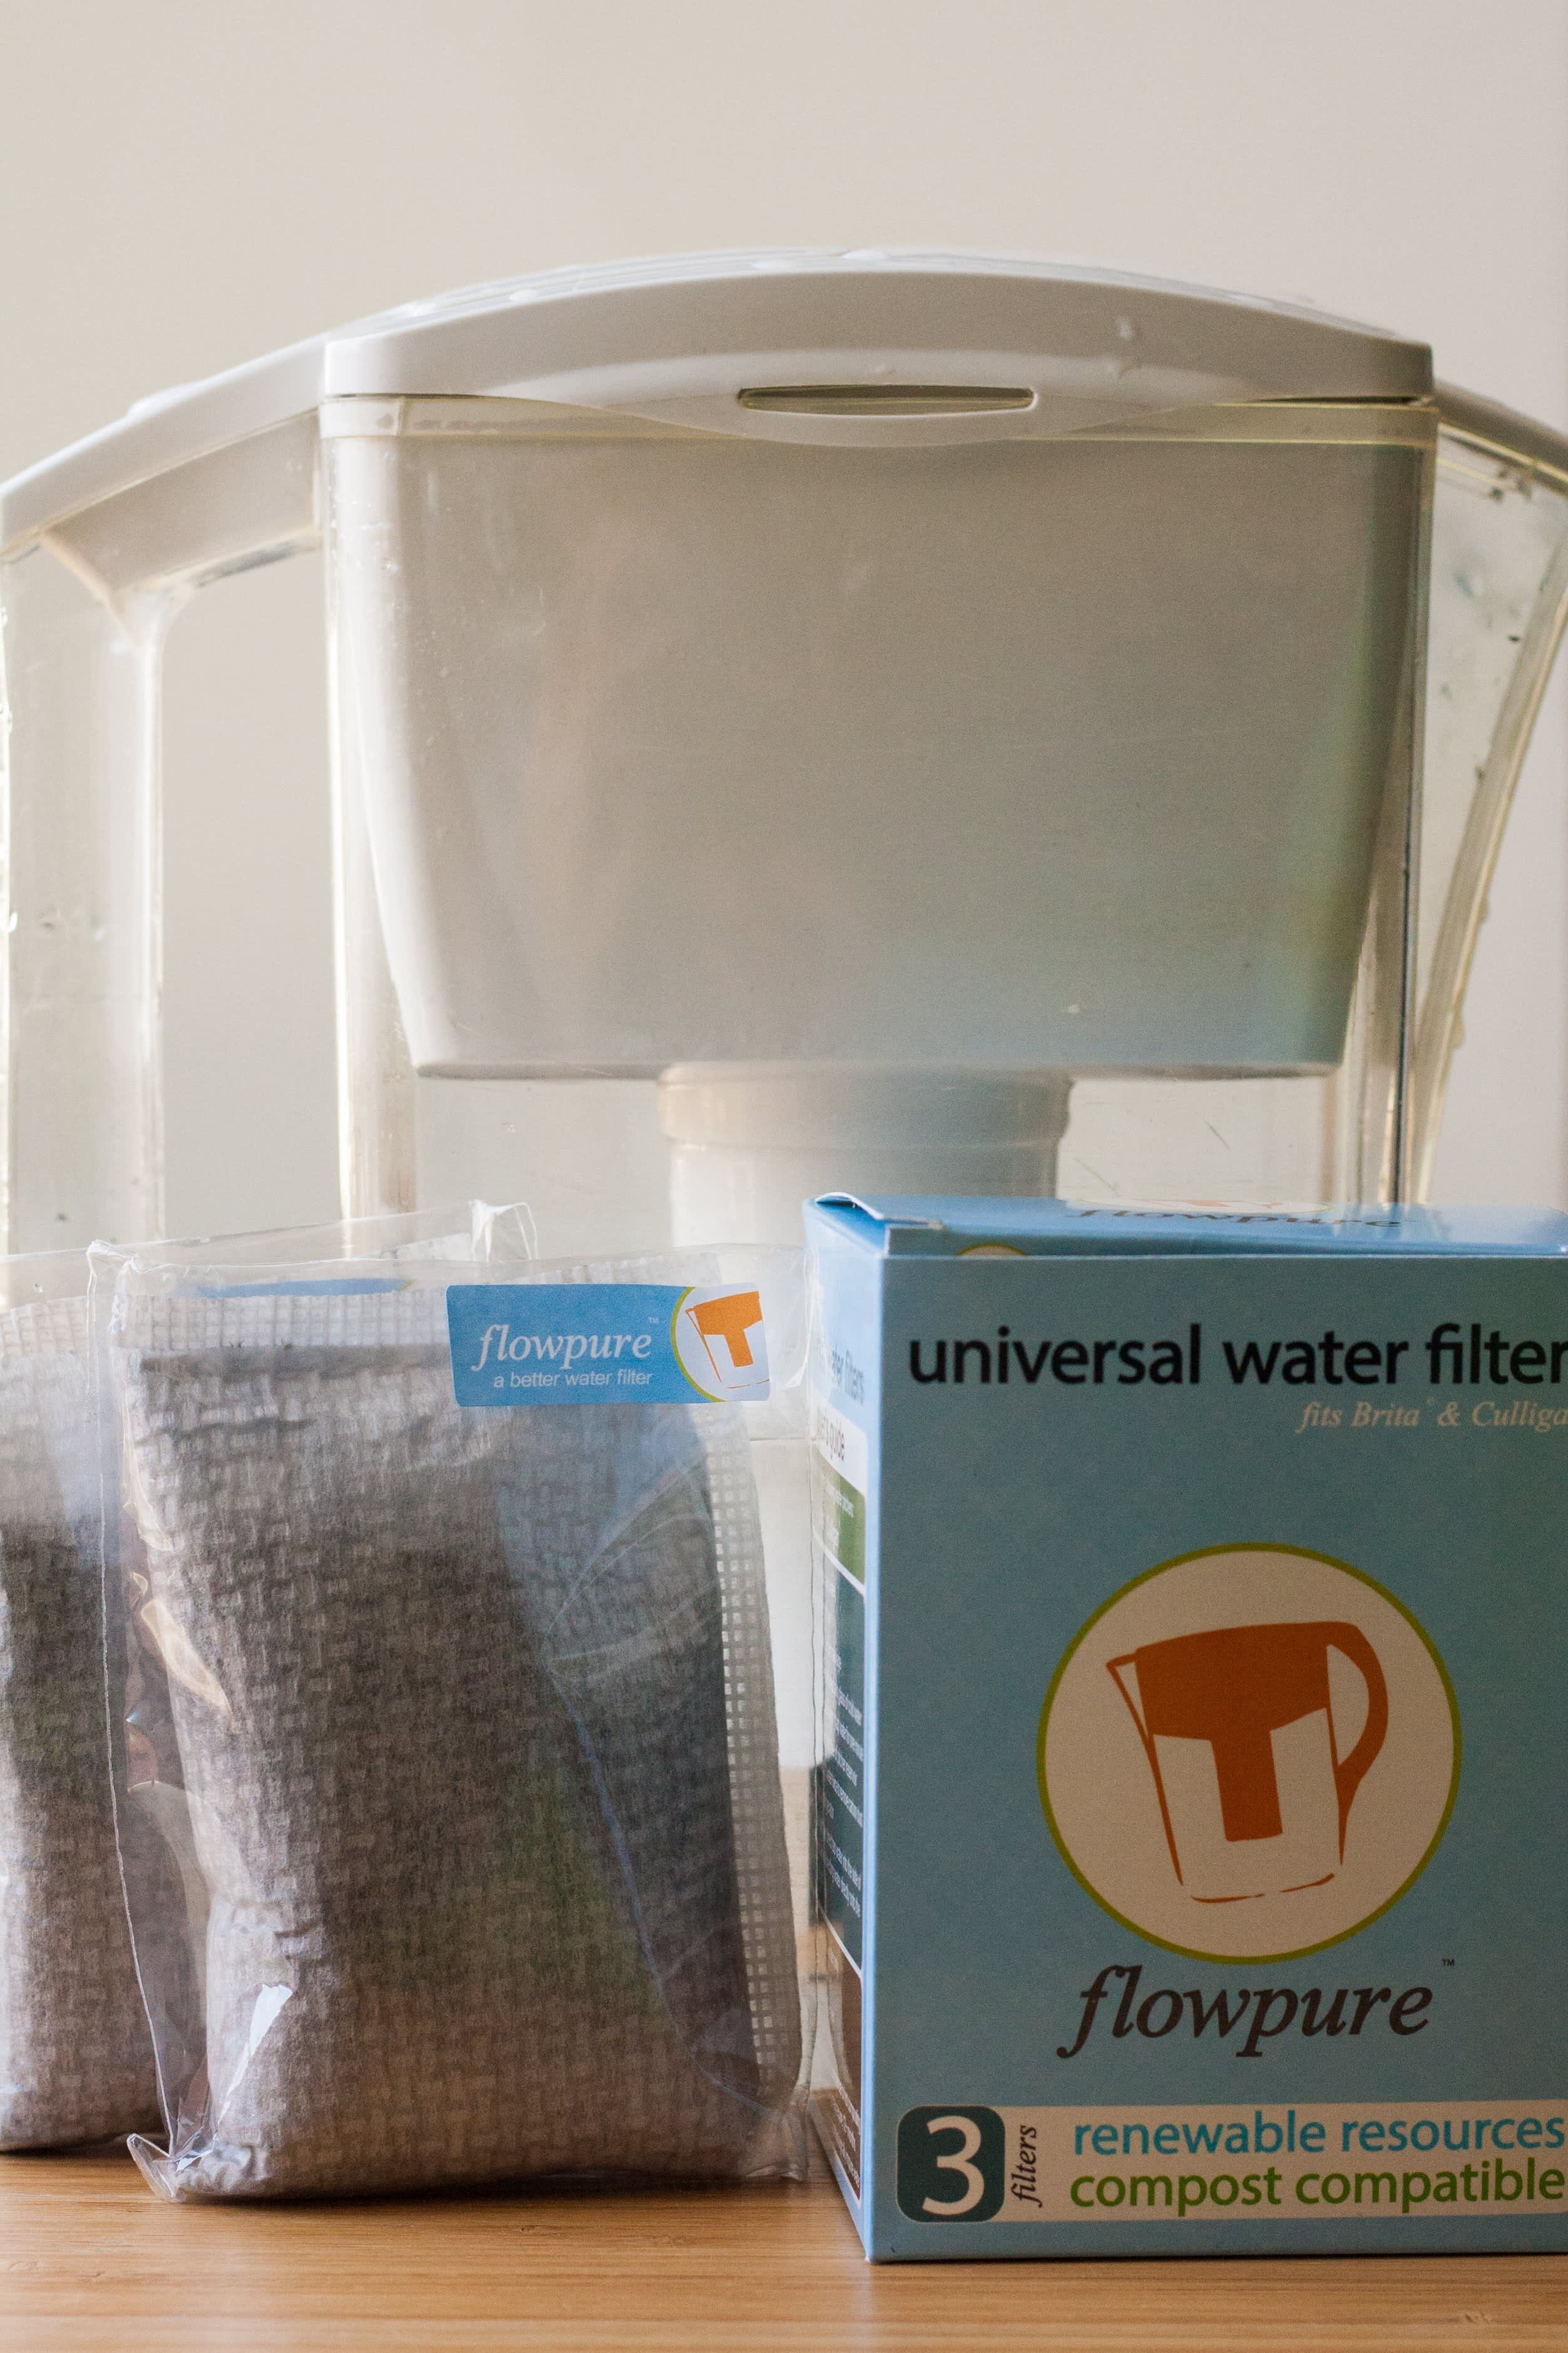 Flowpure Is a Green, Compostable Filter for Any Water Pitcher: gallery image 1